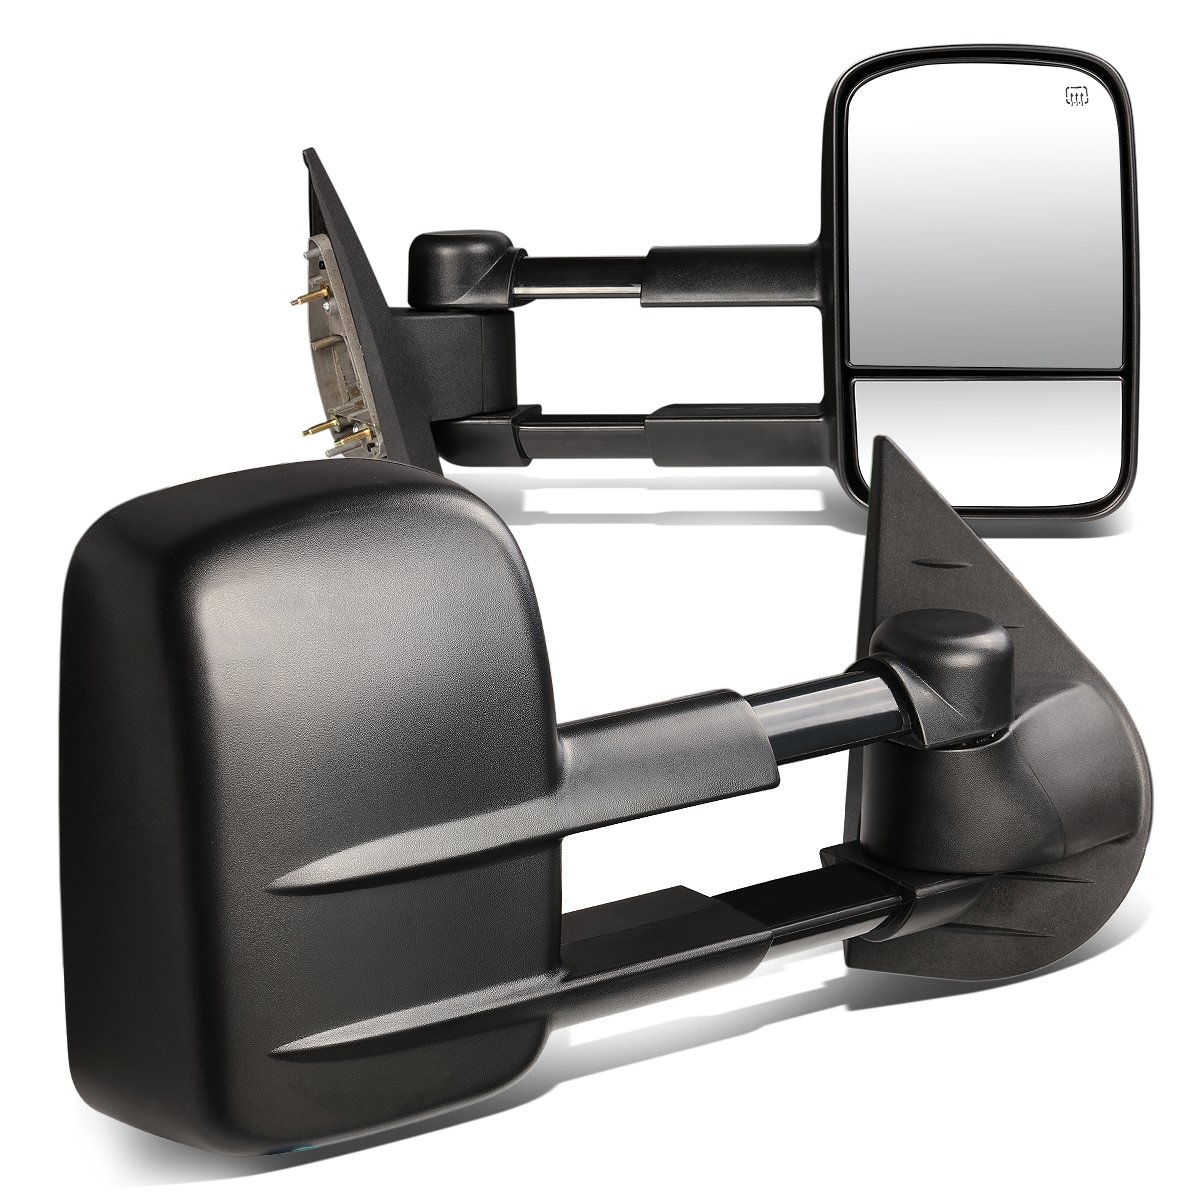 For Chevy/GMC GMT900 Pair of Power + Heated Manual Extend Towing Side Mirror (Black) by Auto Dynasty